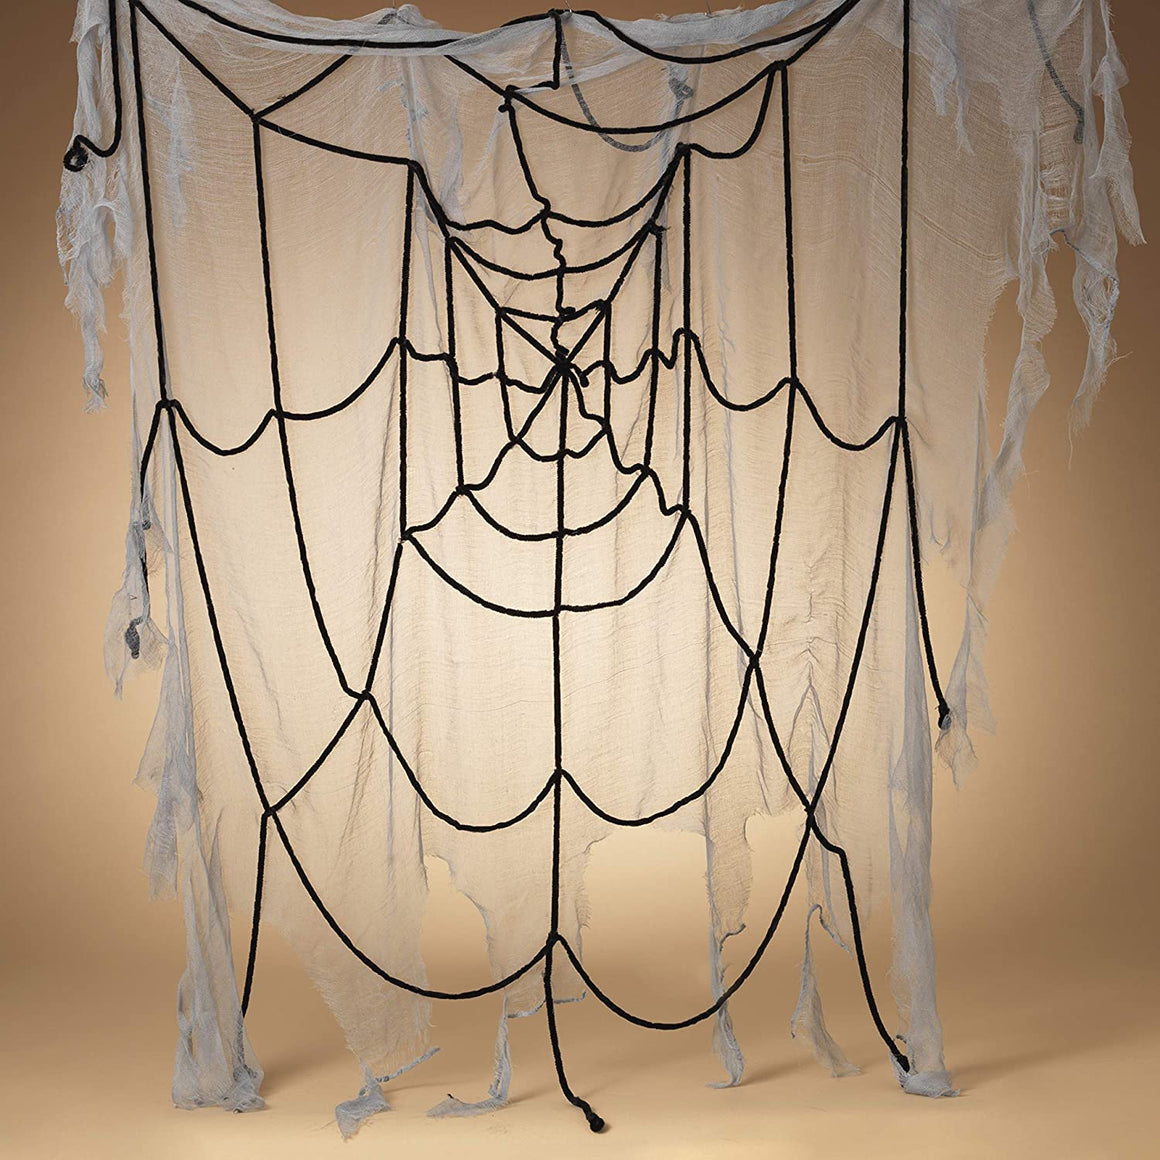 5.5 Foot Spooky Spider Web for Halloween Decor, Grey and Black Gauze Web